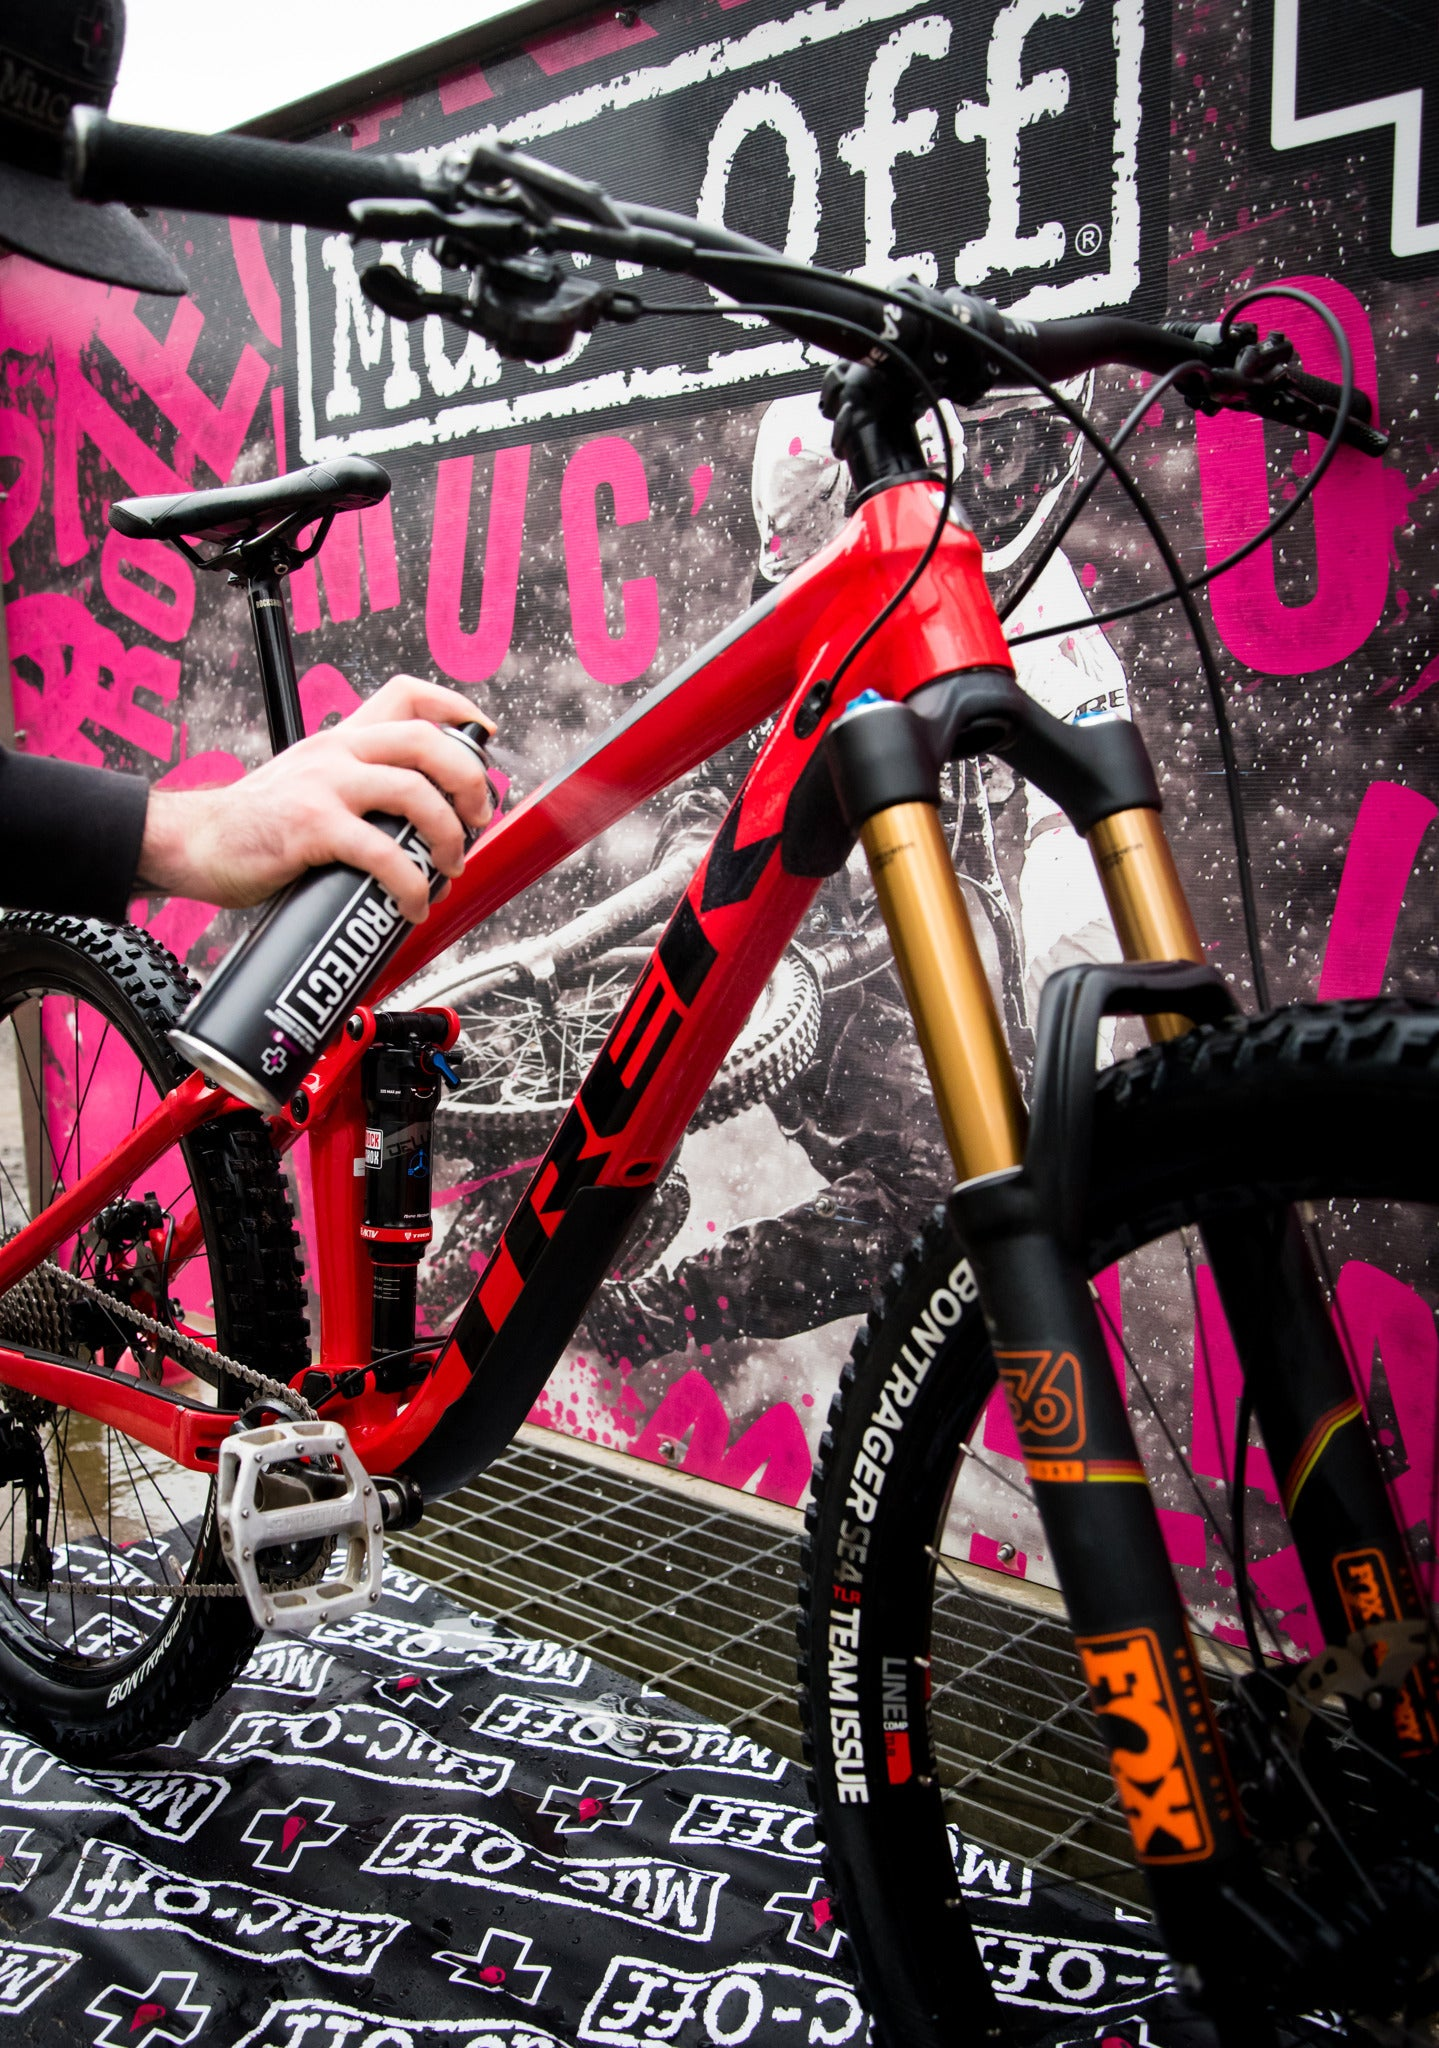 Cleaning Your Bike in 5 Minutes or Less